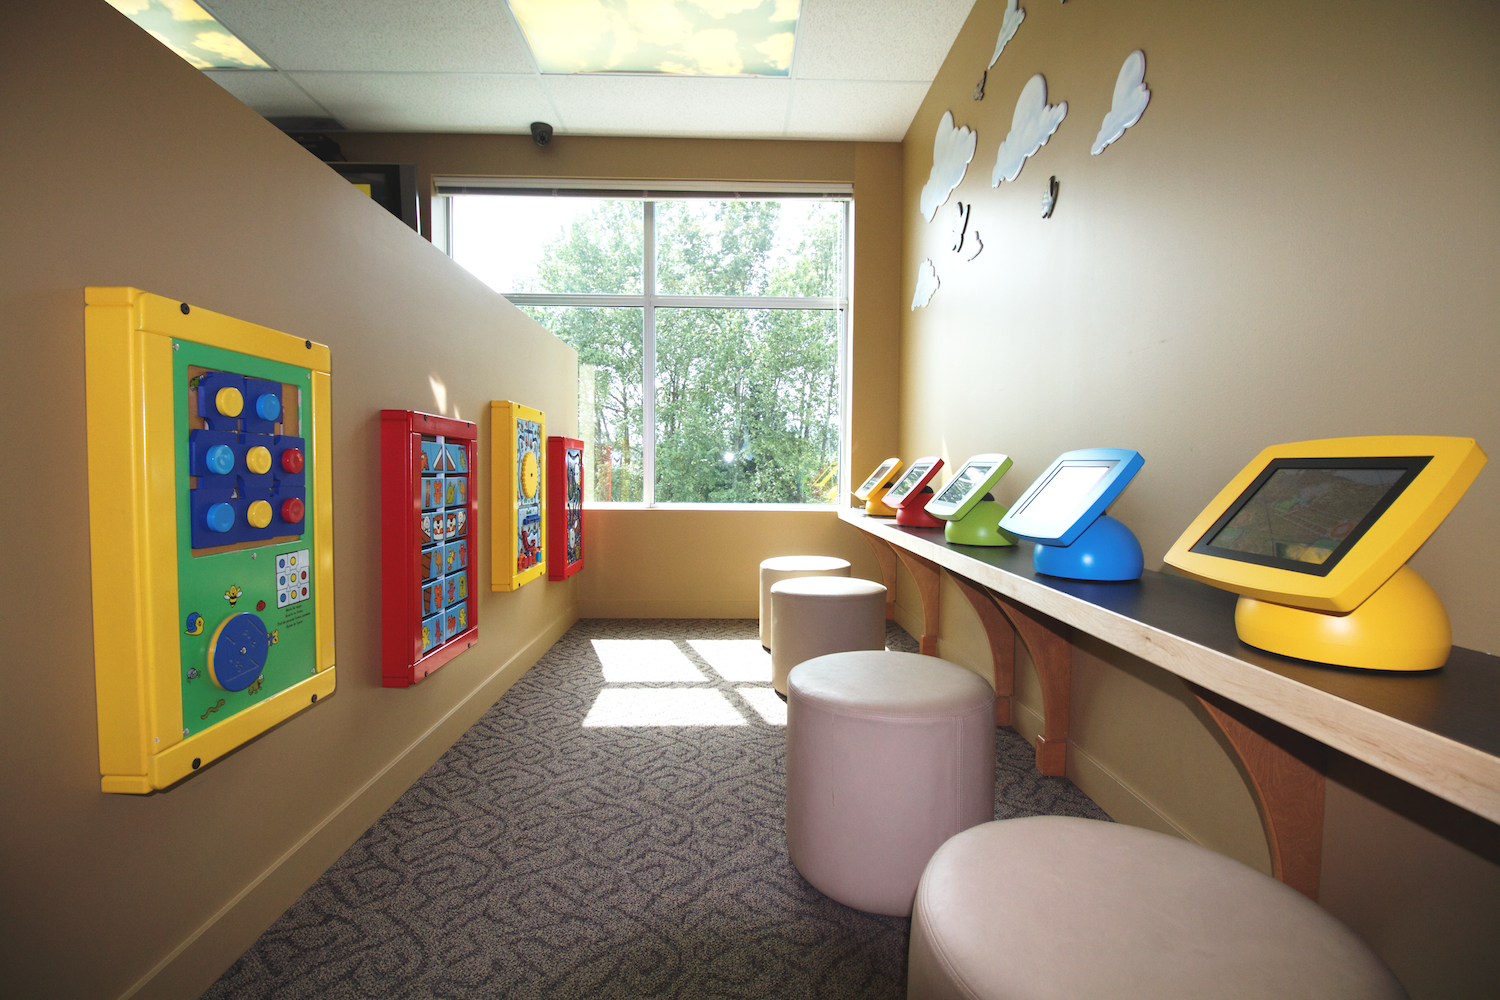 Monarch Pediatric Dental Centre's welcome areas have adjacent play areas with toys, books and video games.